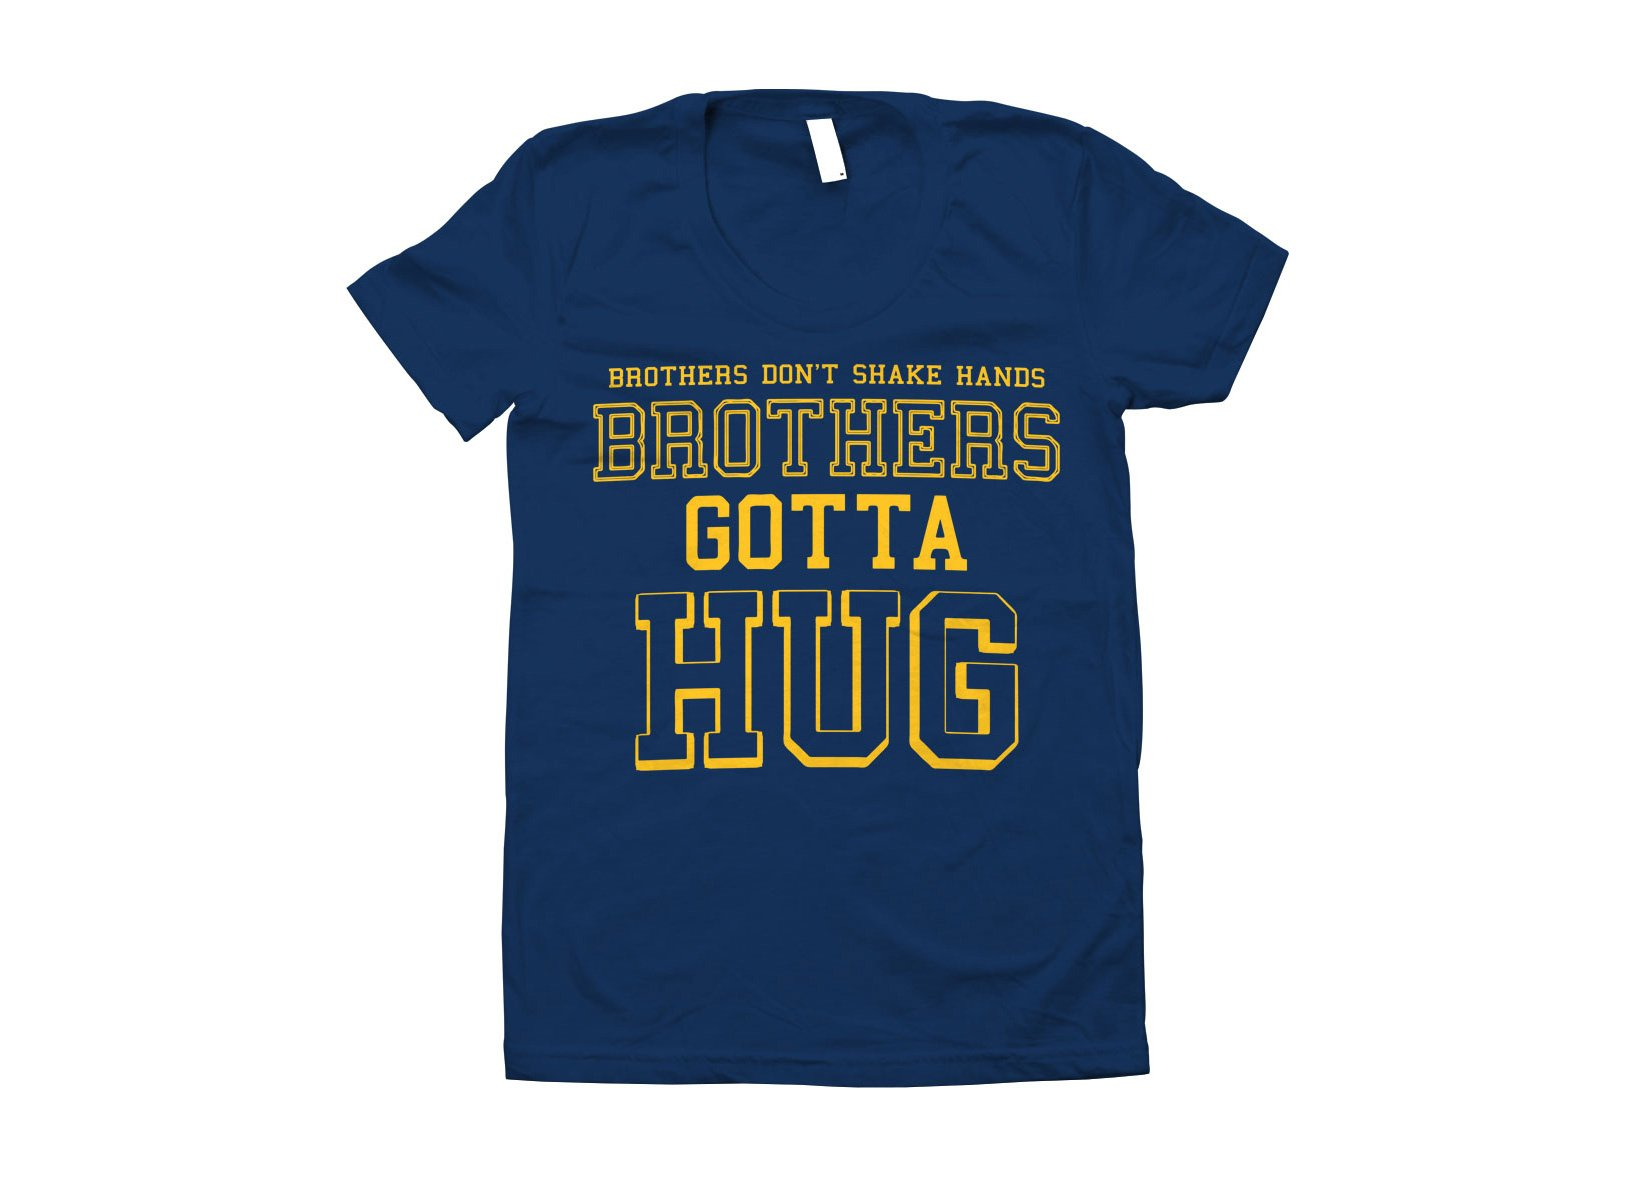 Brothers Gotta Hug on Juniors T-Shirt